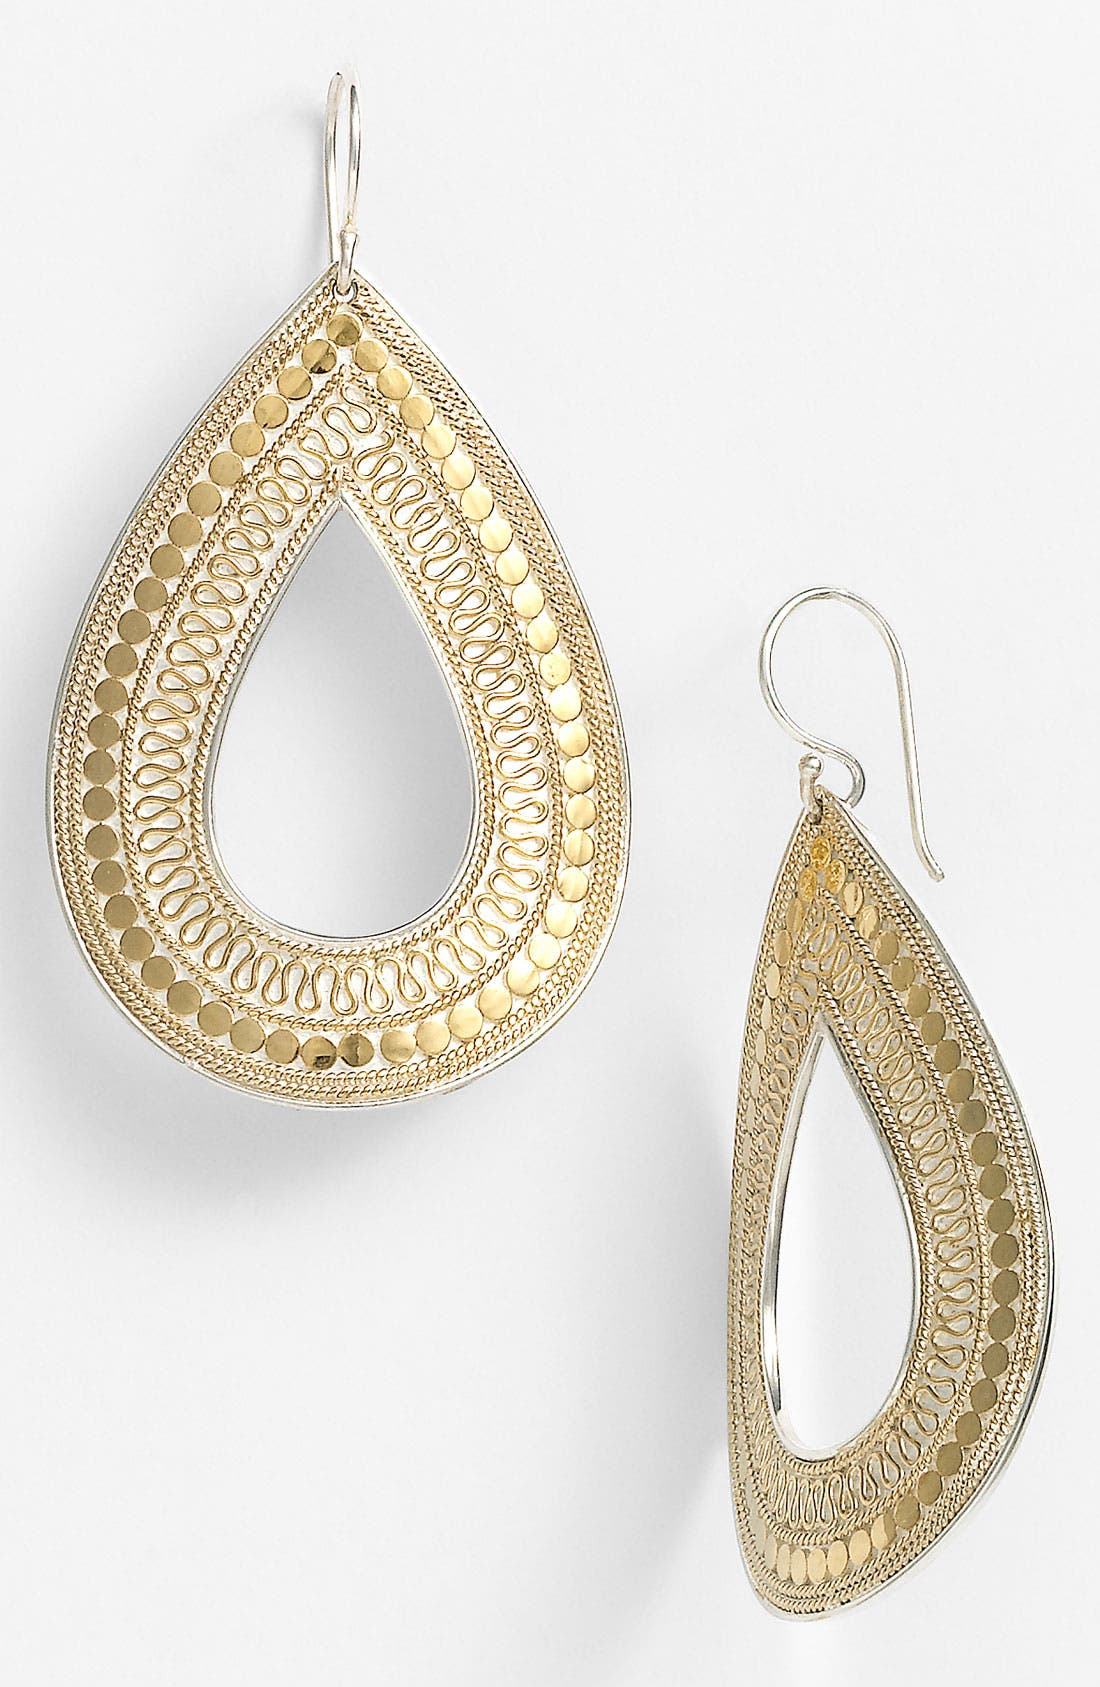 Alternate Image 1 Selected - Anna Beck 'Gili Wire' Teardrop Earrings (Nordstrom Exclusive)